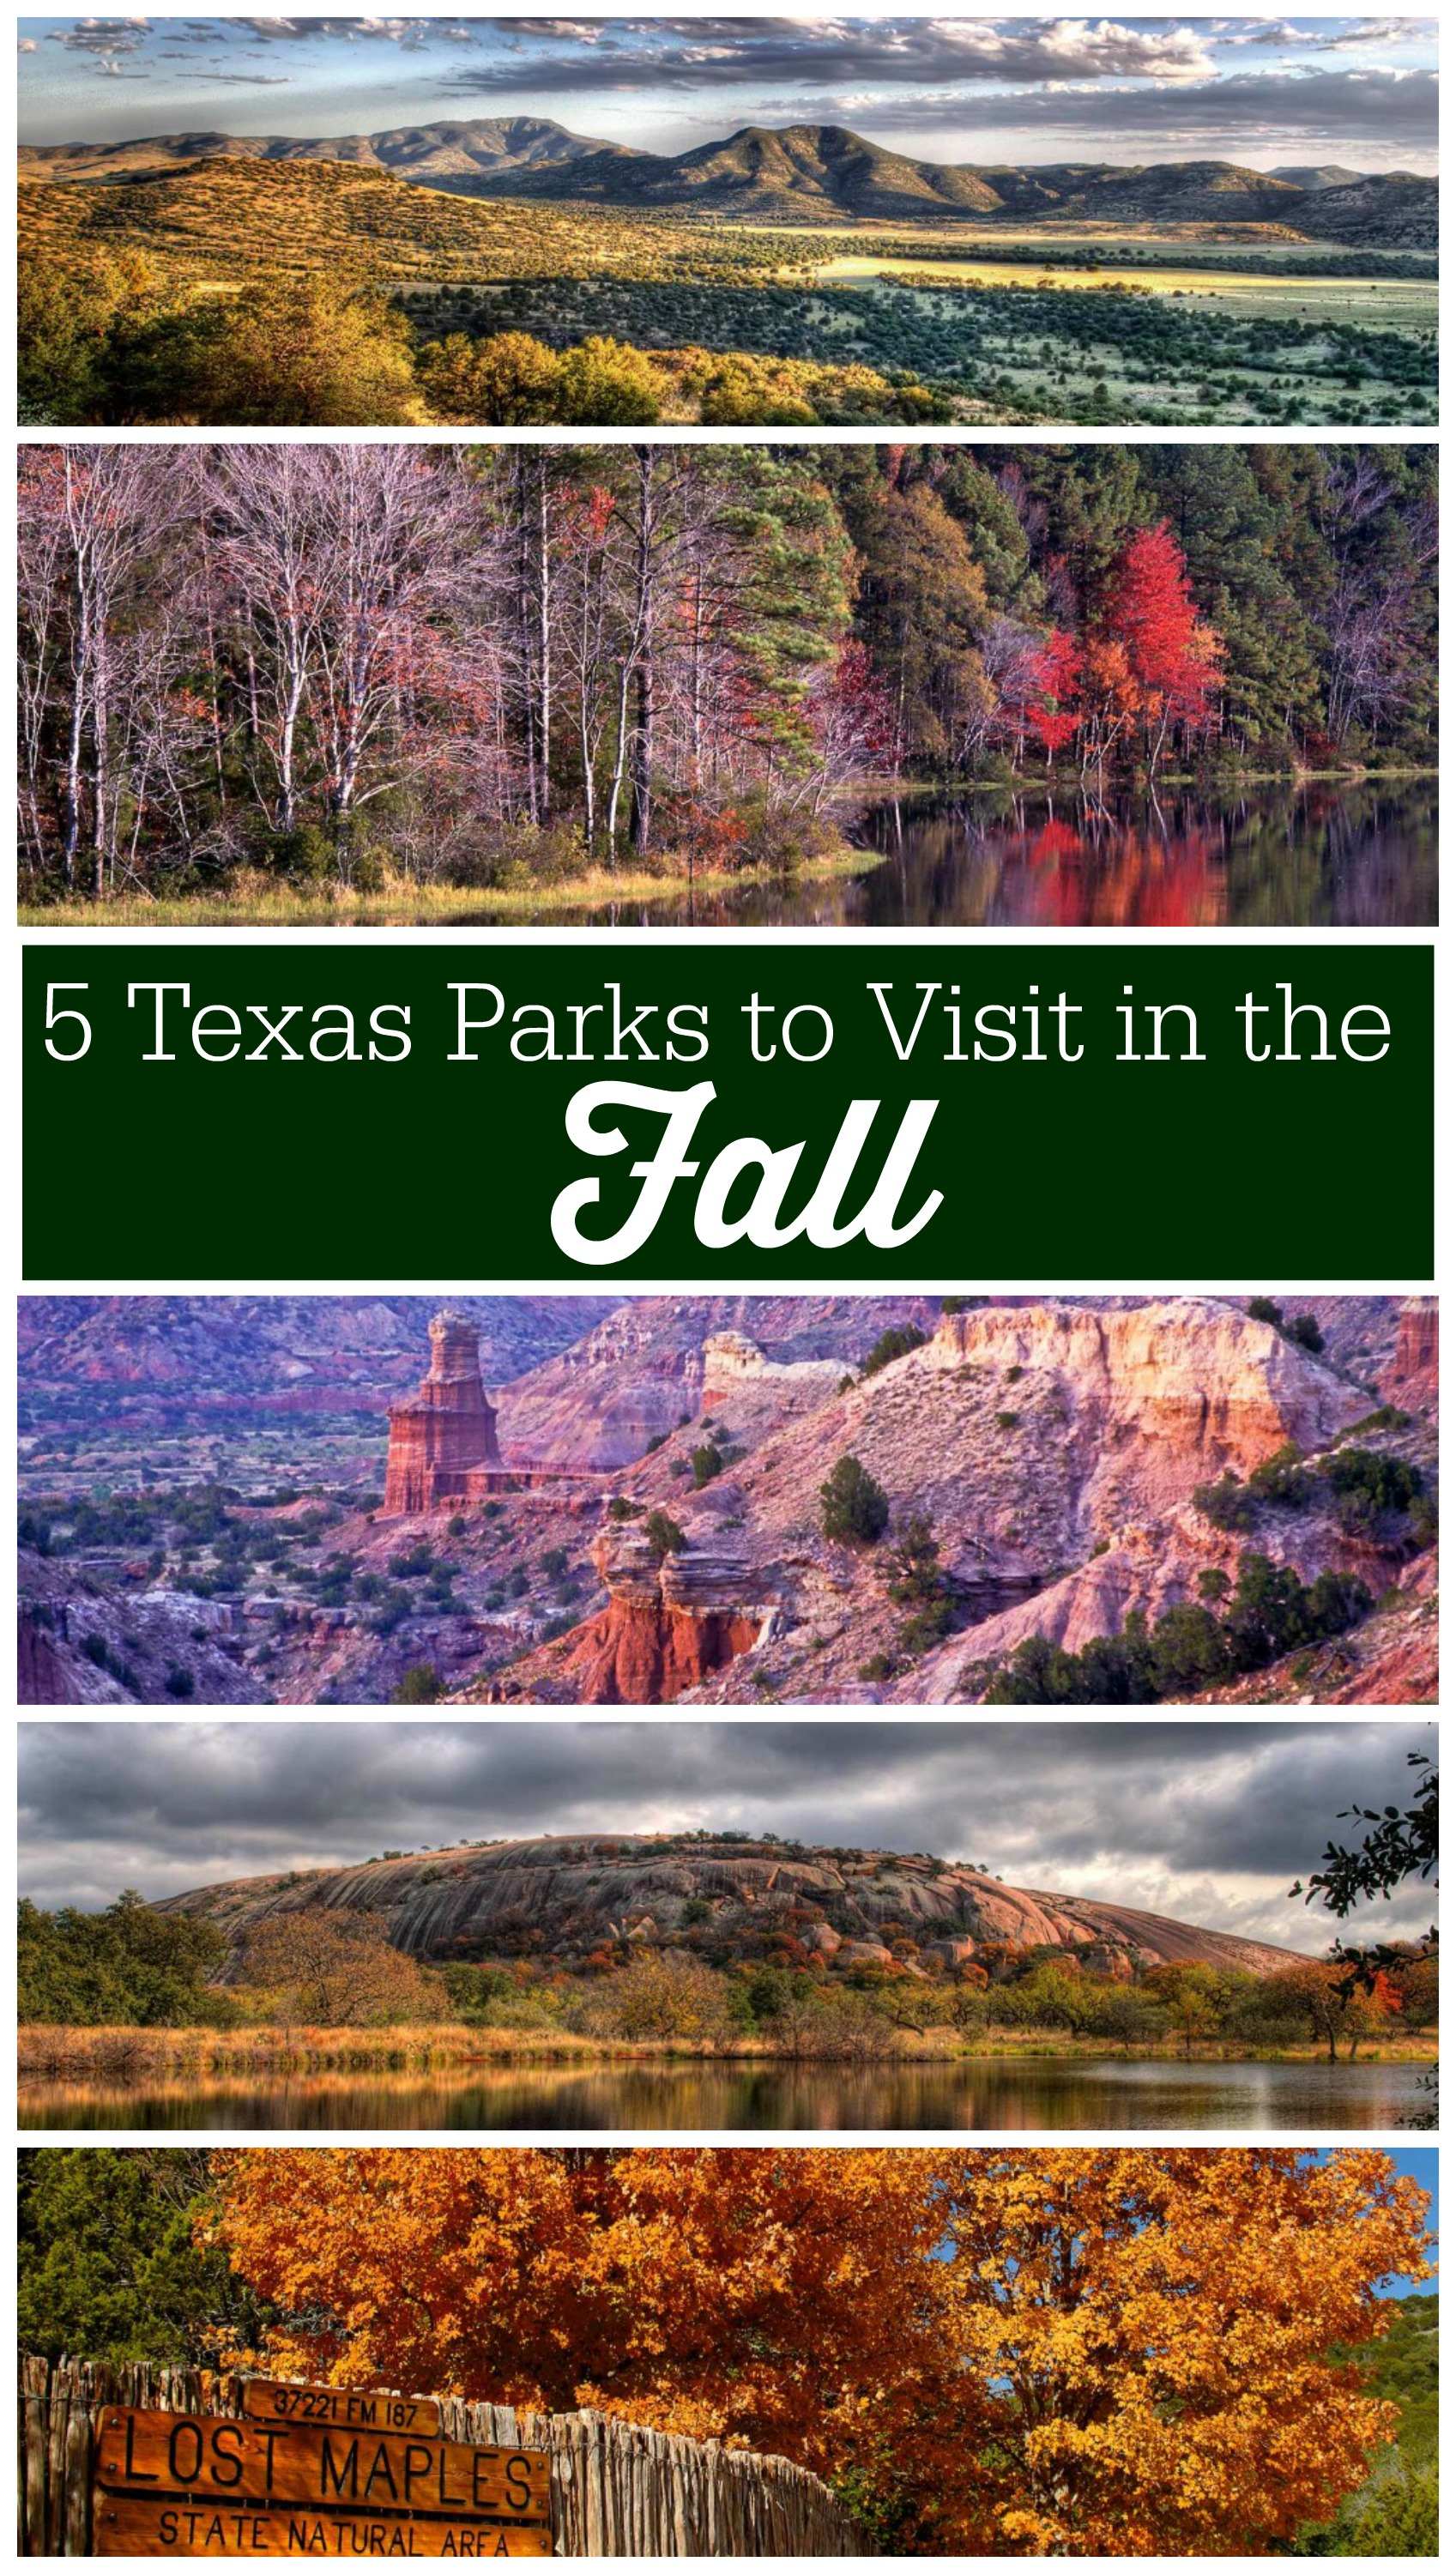 5 Texas Parks You Have to See this Fall Season for Color